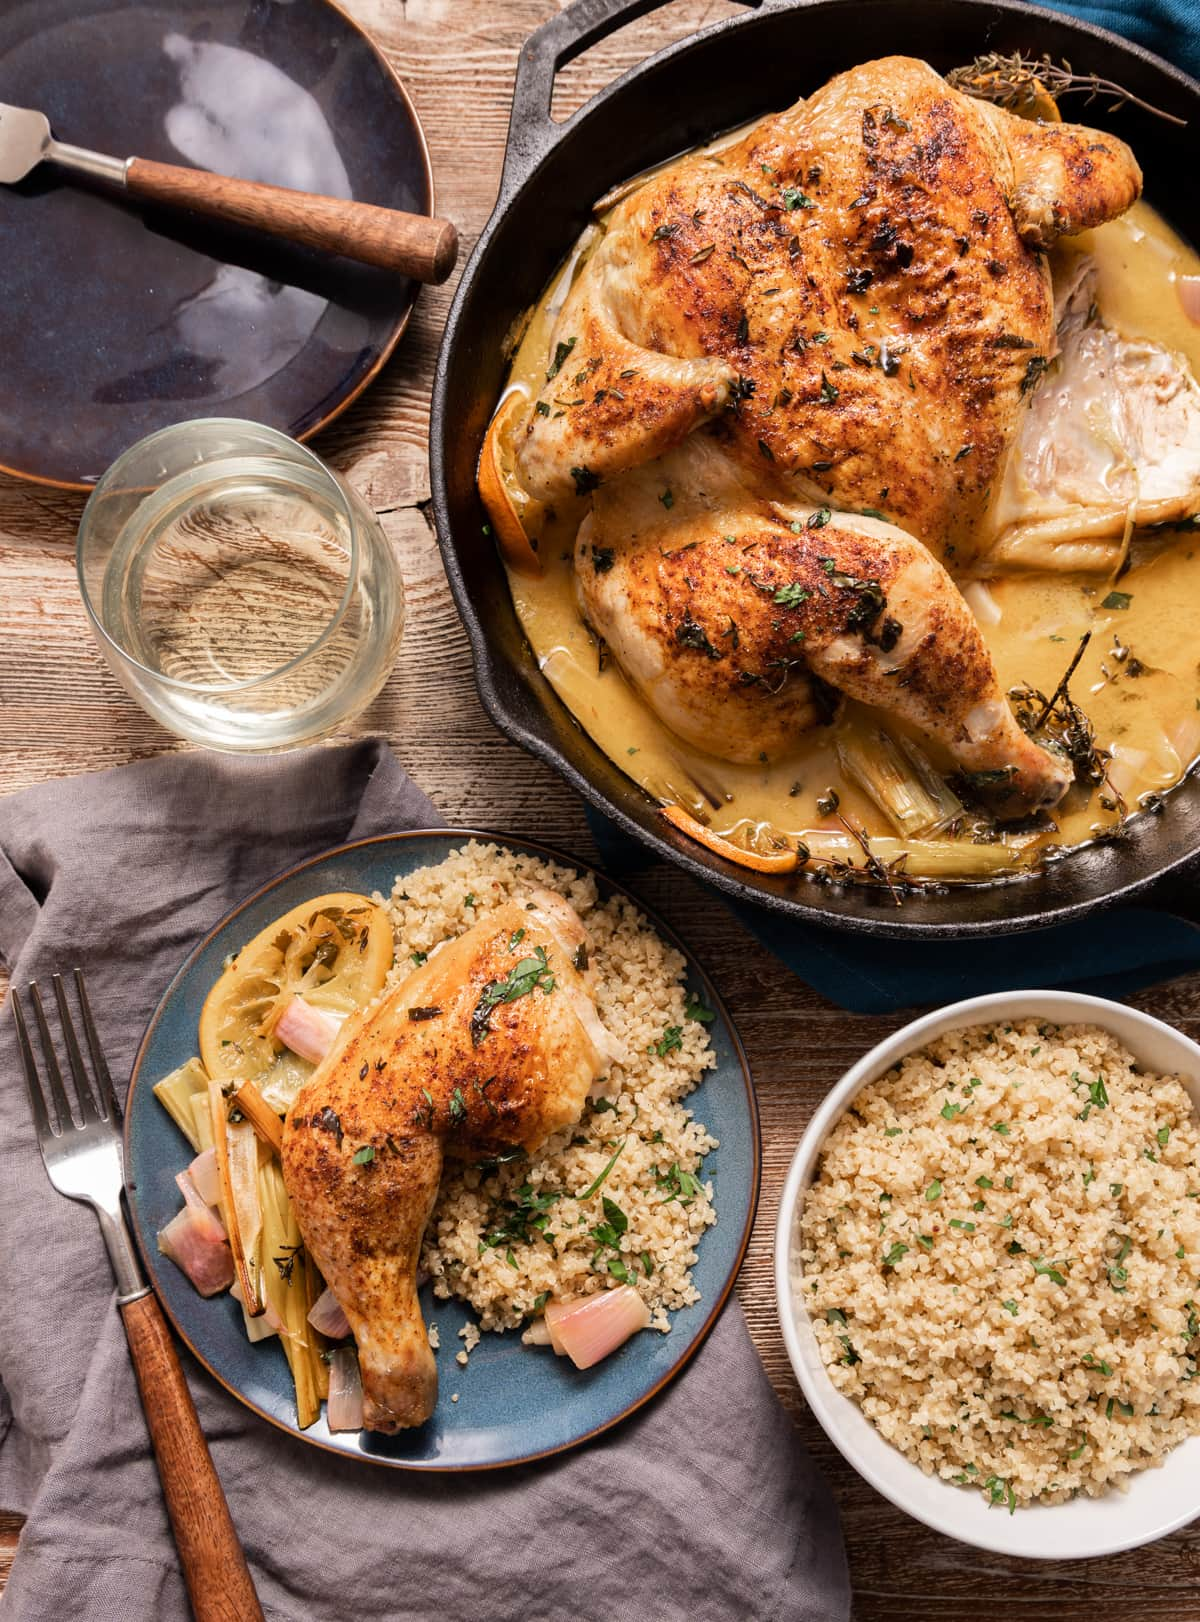 spatcocked roasted chicken in a skillet, plate of chicken with quinoa